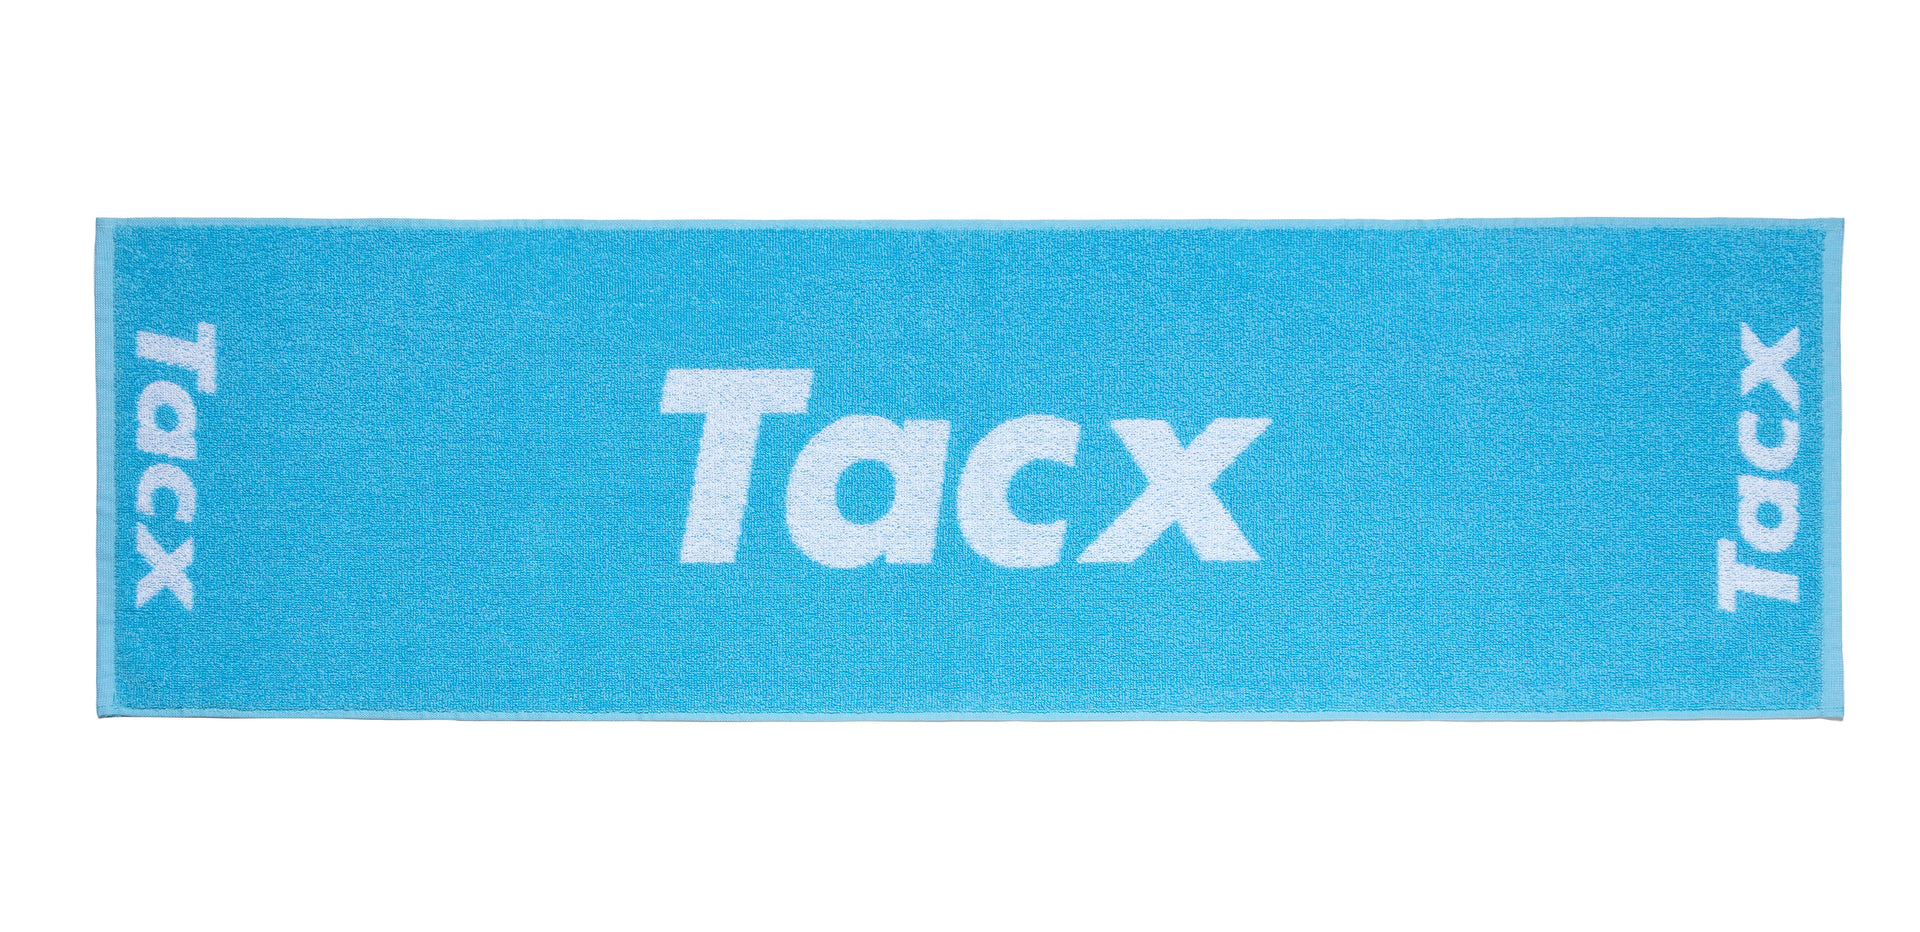 Tacx Handtuch